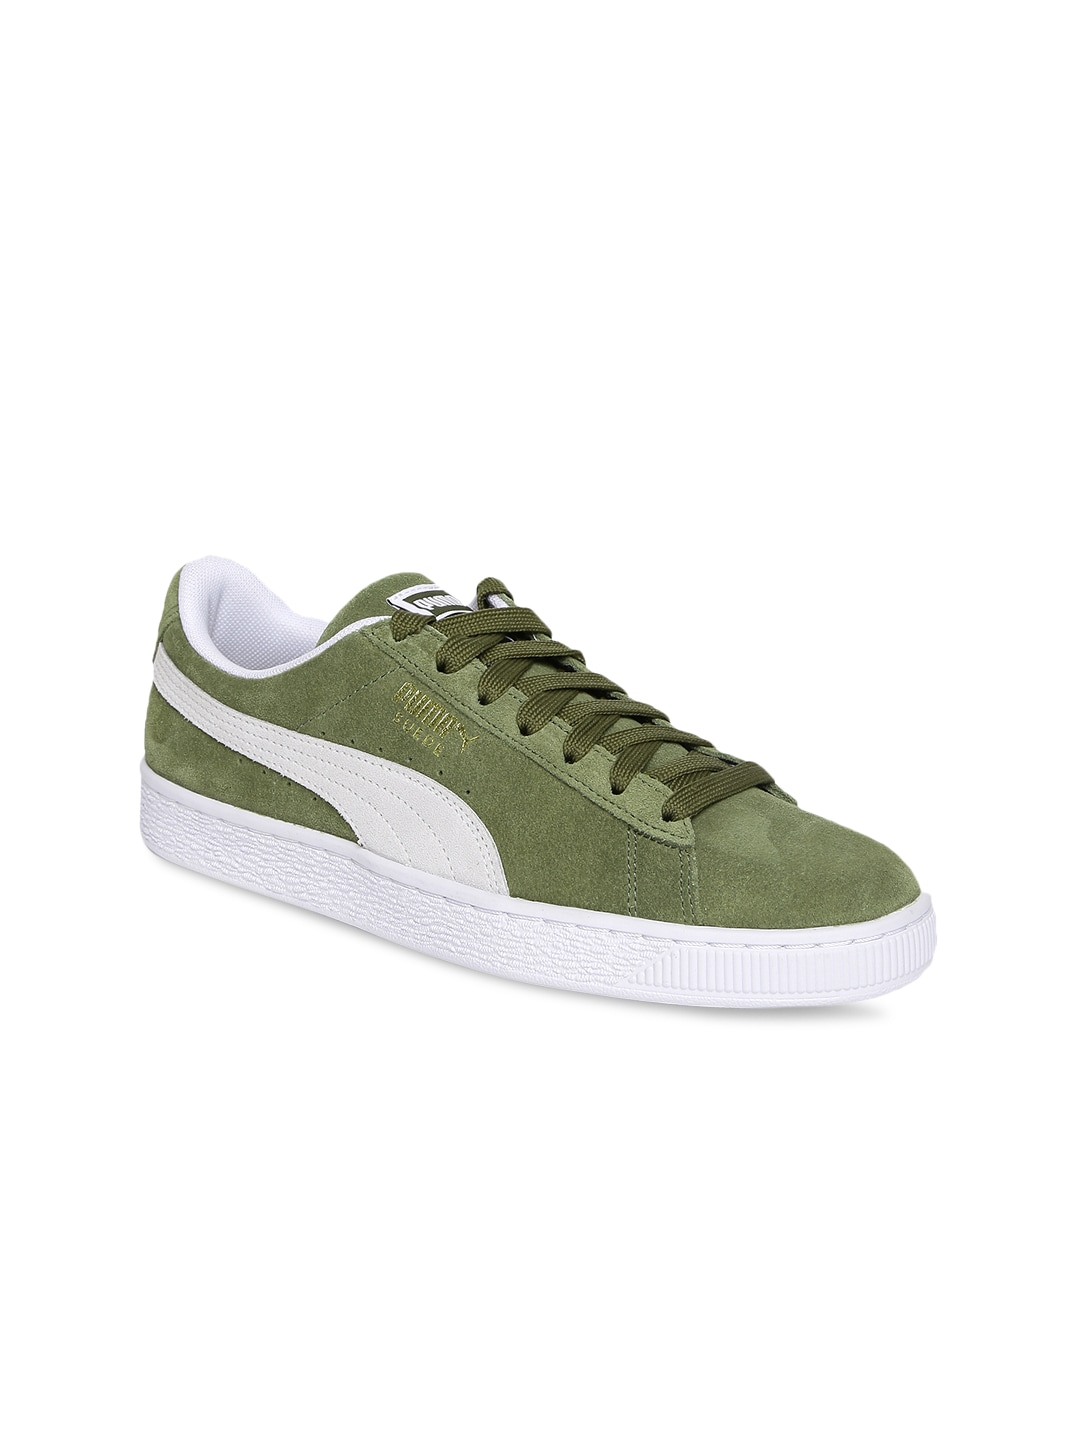 Puma R698 Allover Suede Olive Sneakers for women - Get stylish shoes ... 11f663505